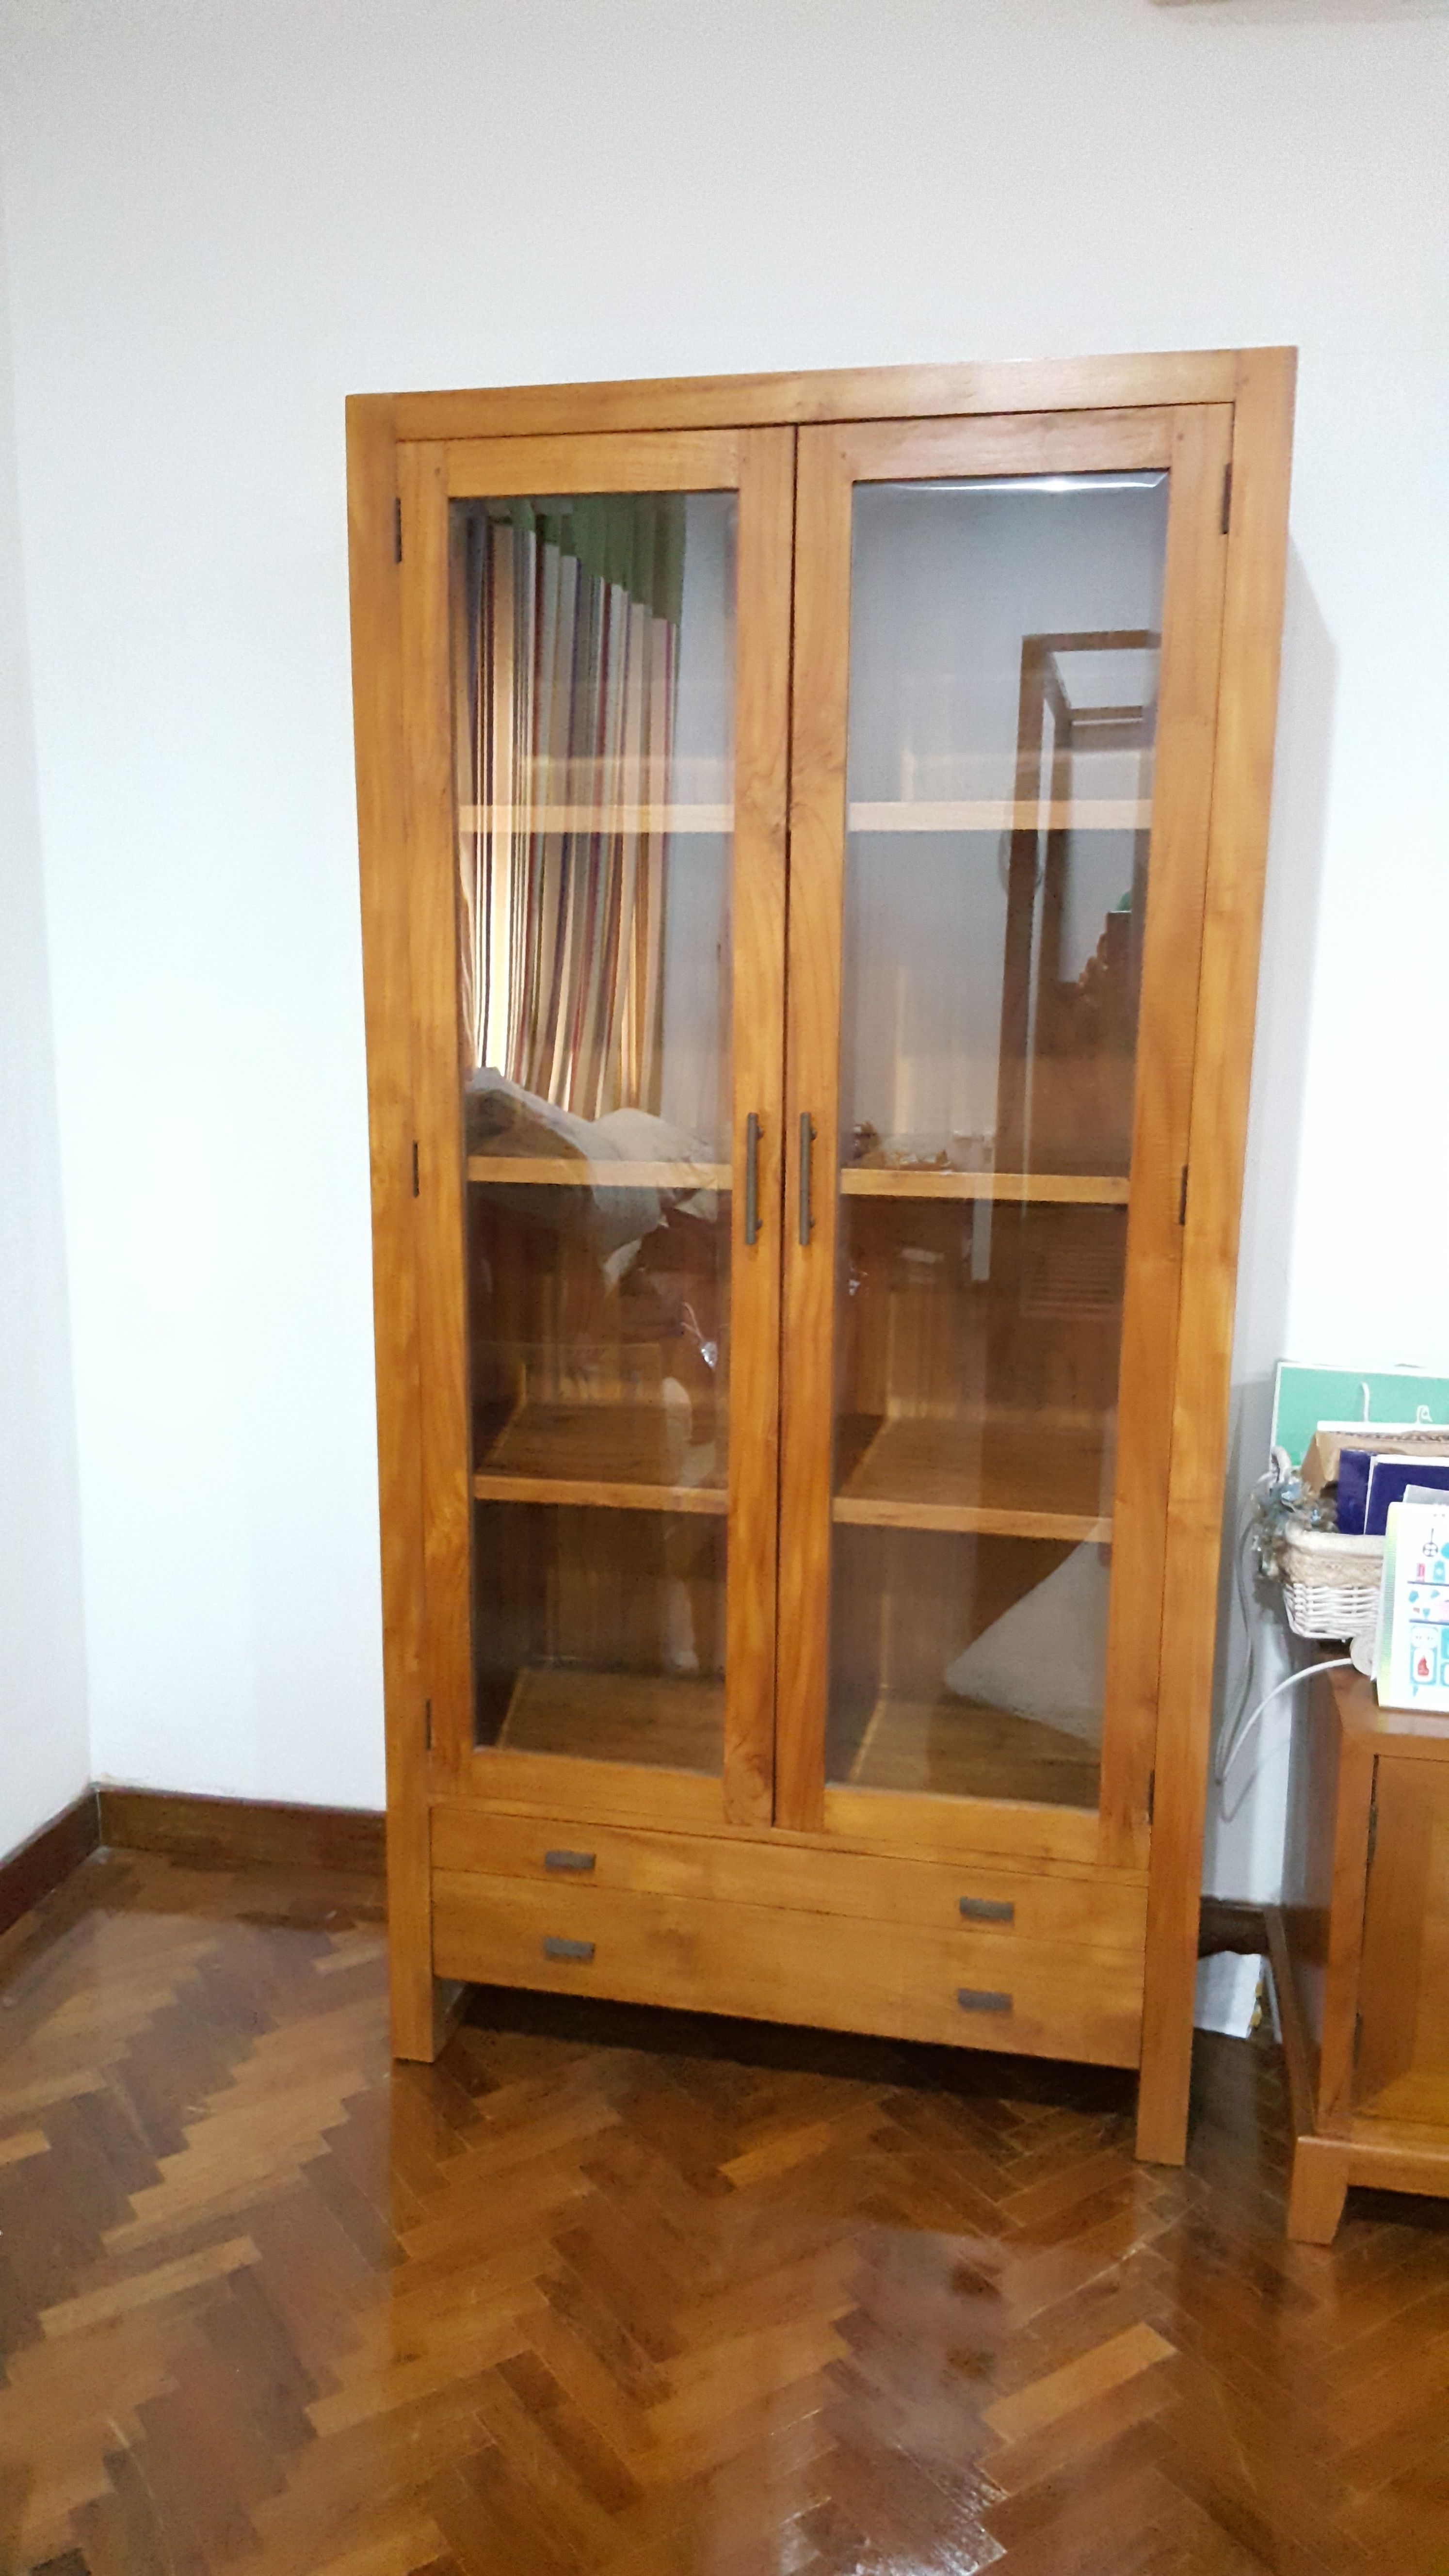 Nice This Two Unit Teak Wood Display Cabinet With Glass Doors In The Upper  Section. Feature With A 2 Doors And 2 Drawers For Storage. Dimensions:  L110XD40XH200cm